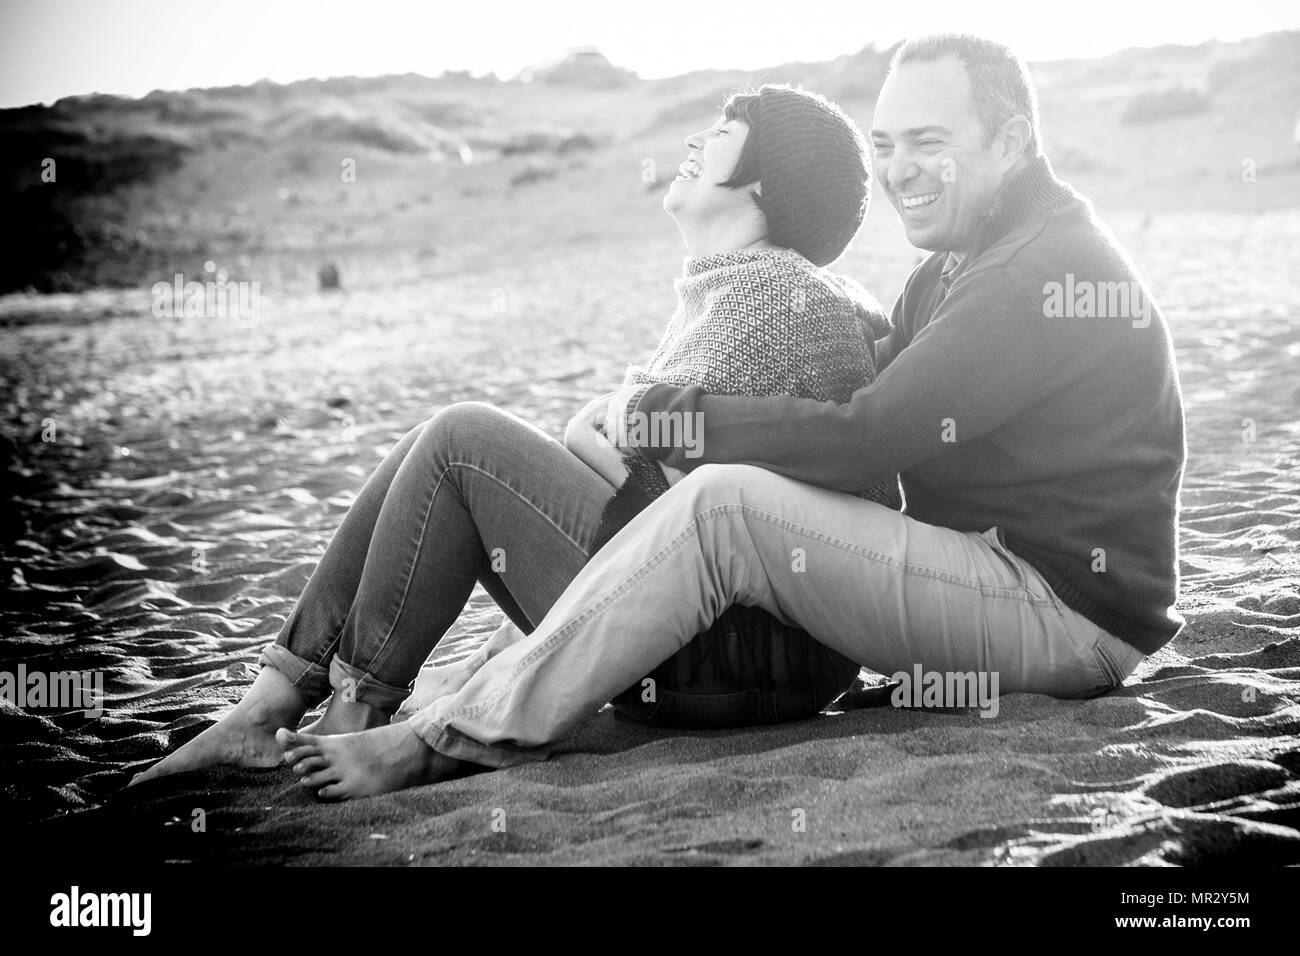 cute man and woman middle aged having fun in love at the beach outdoor. leisure activity and big smile and laugh for the lady. the man embrace her. ro - Stock Image